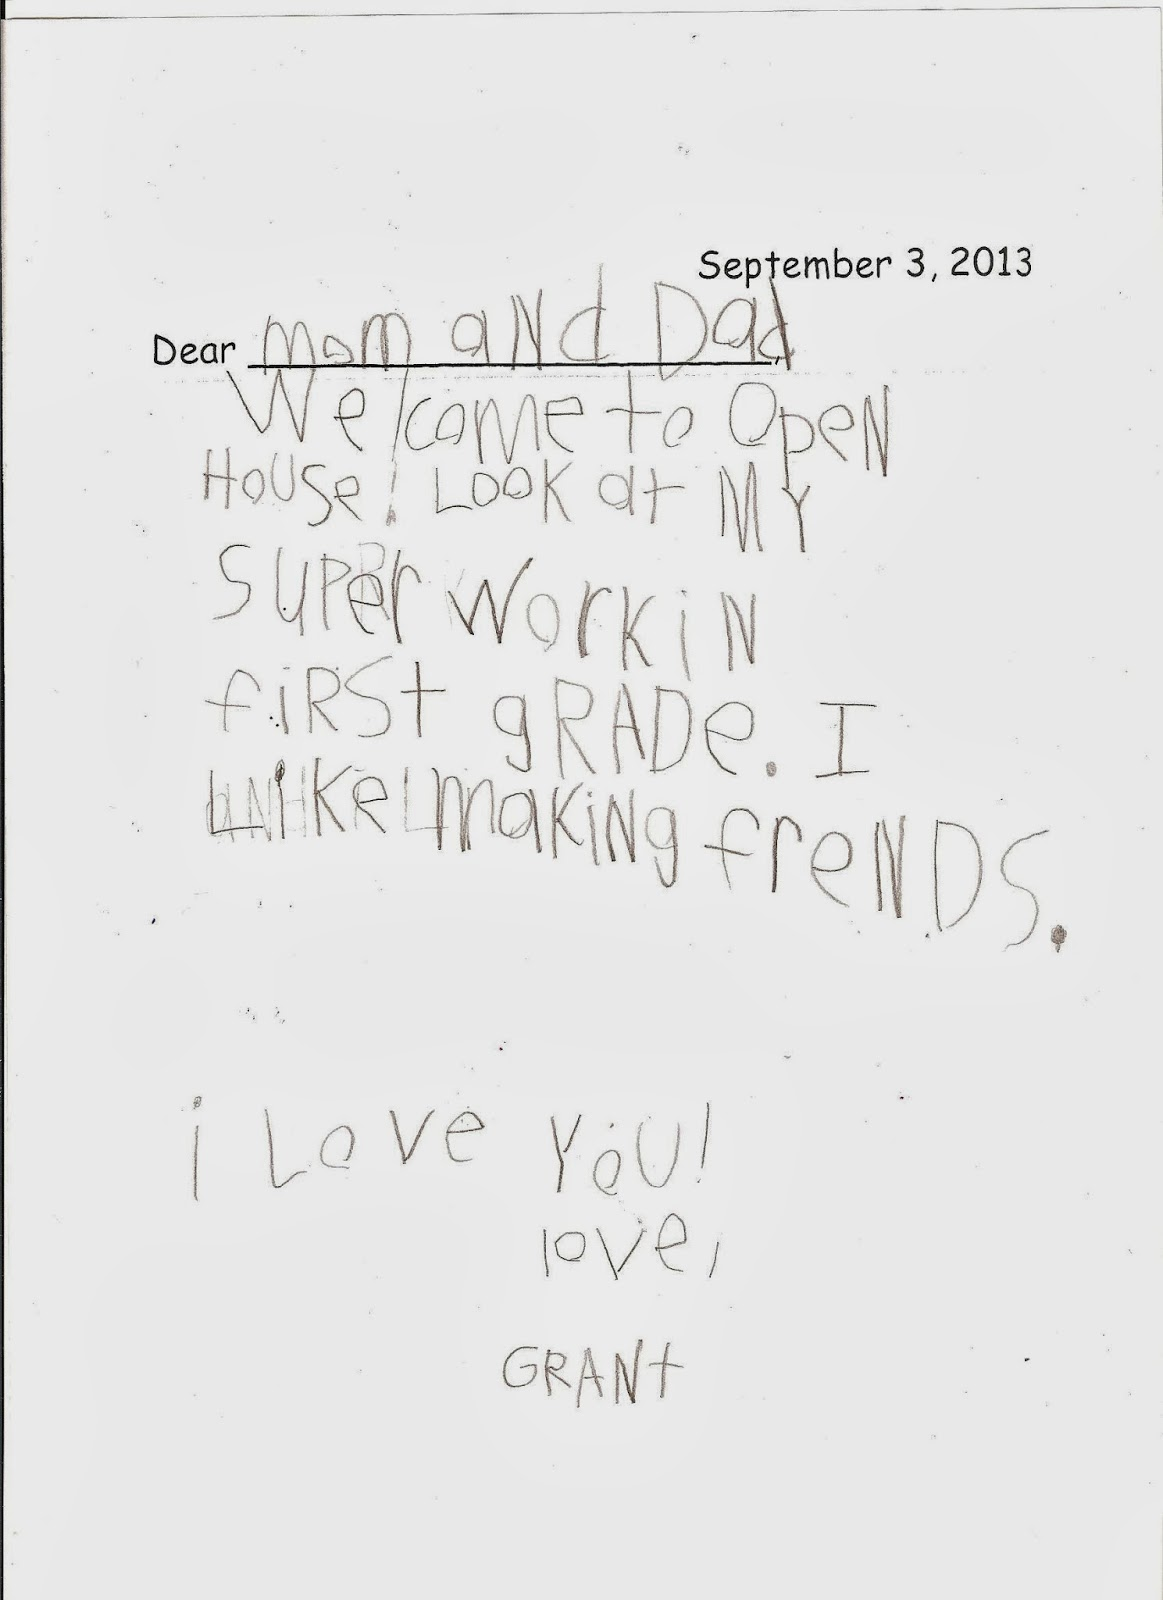 The Shupeville Zoo: Letters from Grant